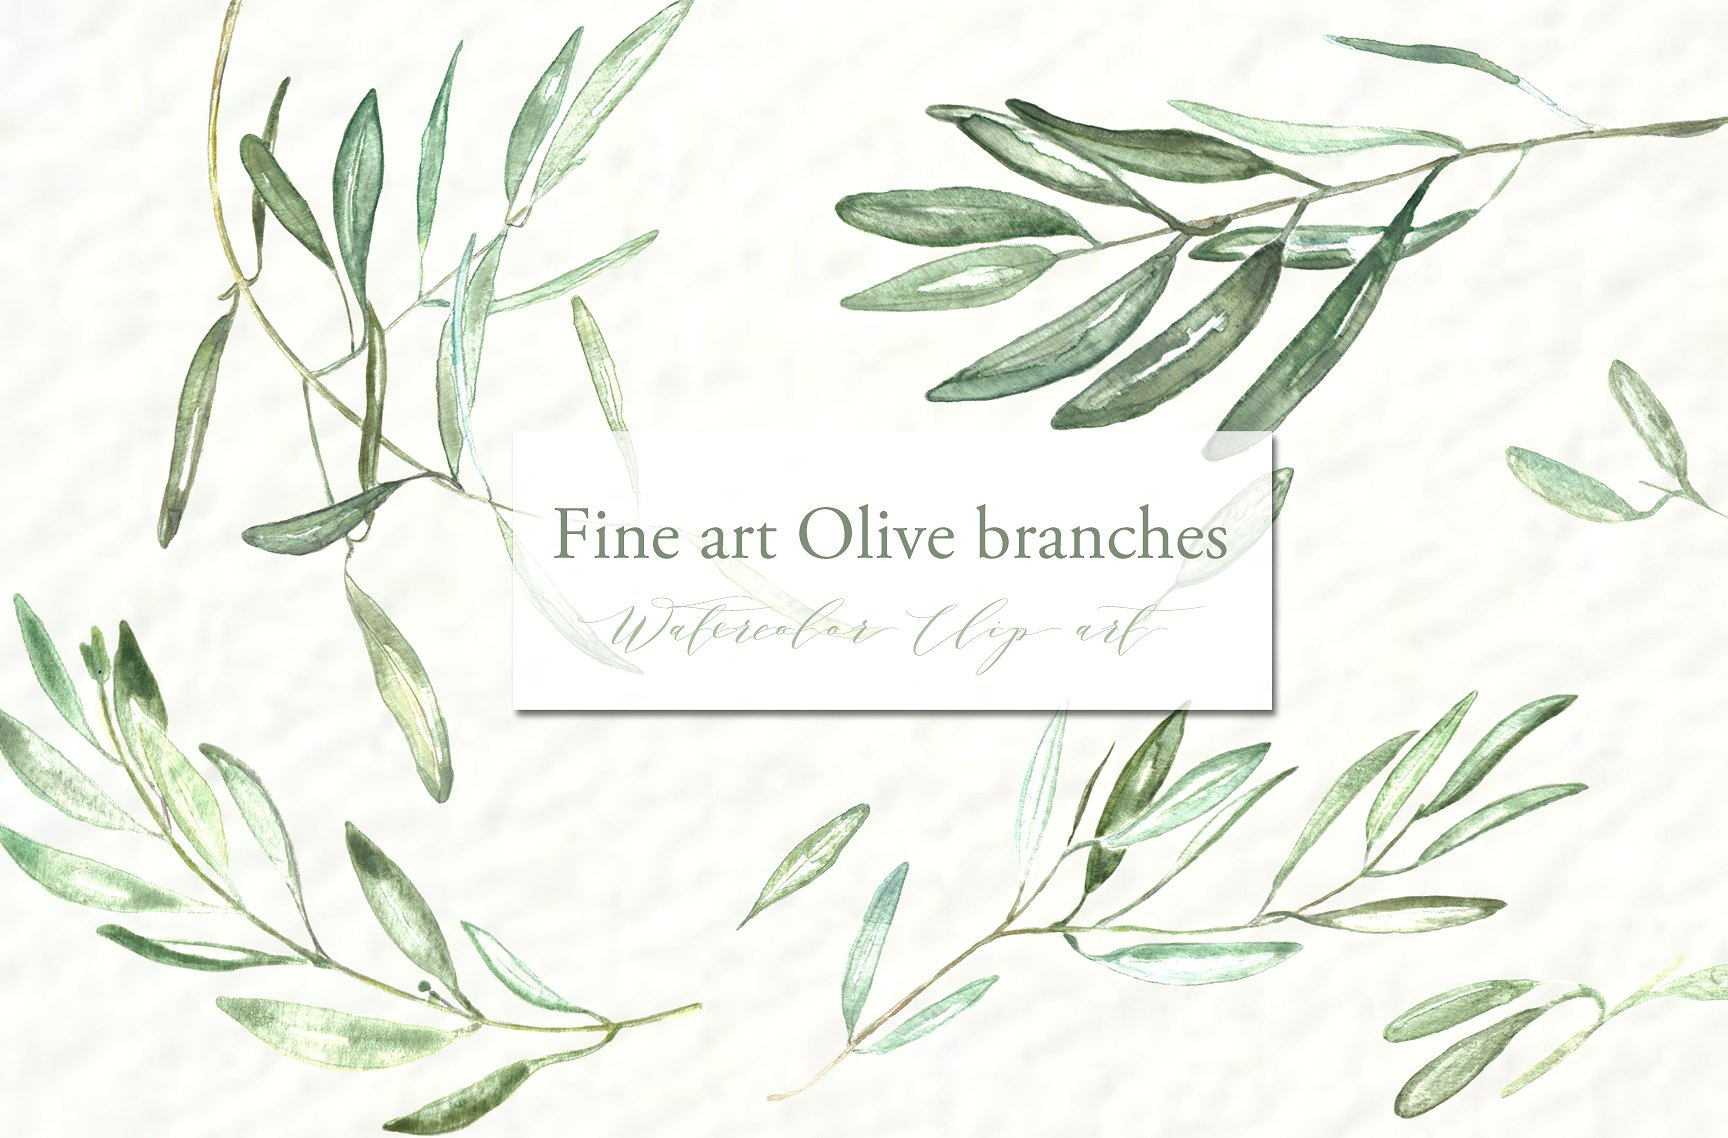 Olive clipart olive branch. Branches watercolor illustrations creative